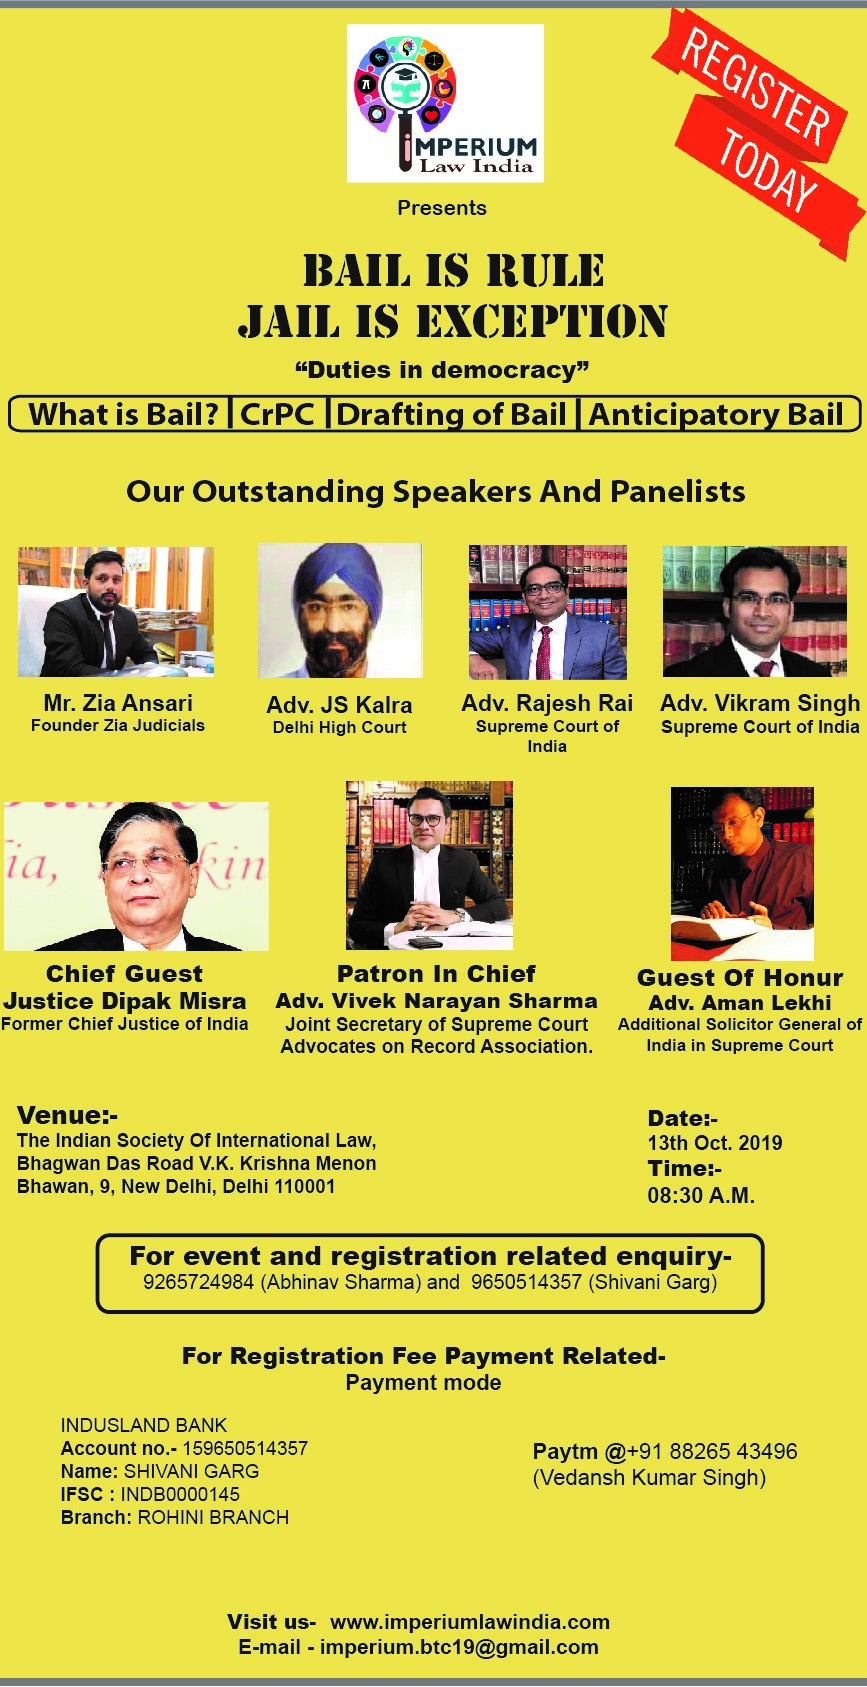 Seminar on Bail is rule and Jail is exception by Imperium Law India [Oct 13, Delhi]: Registrations Open